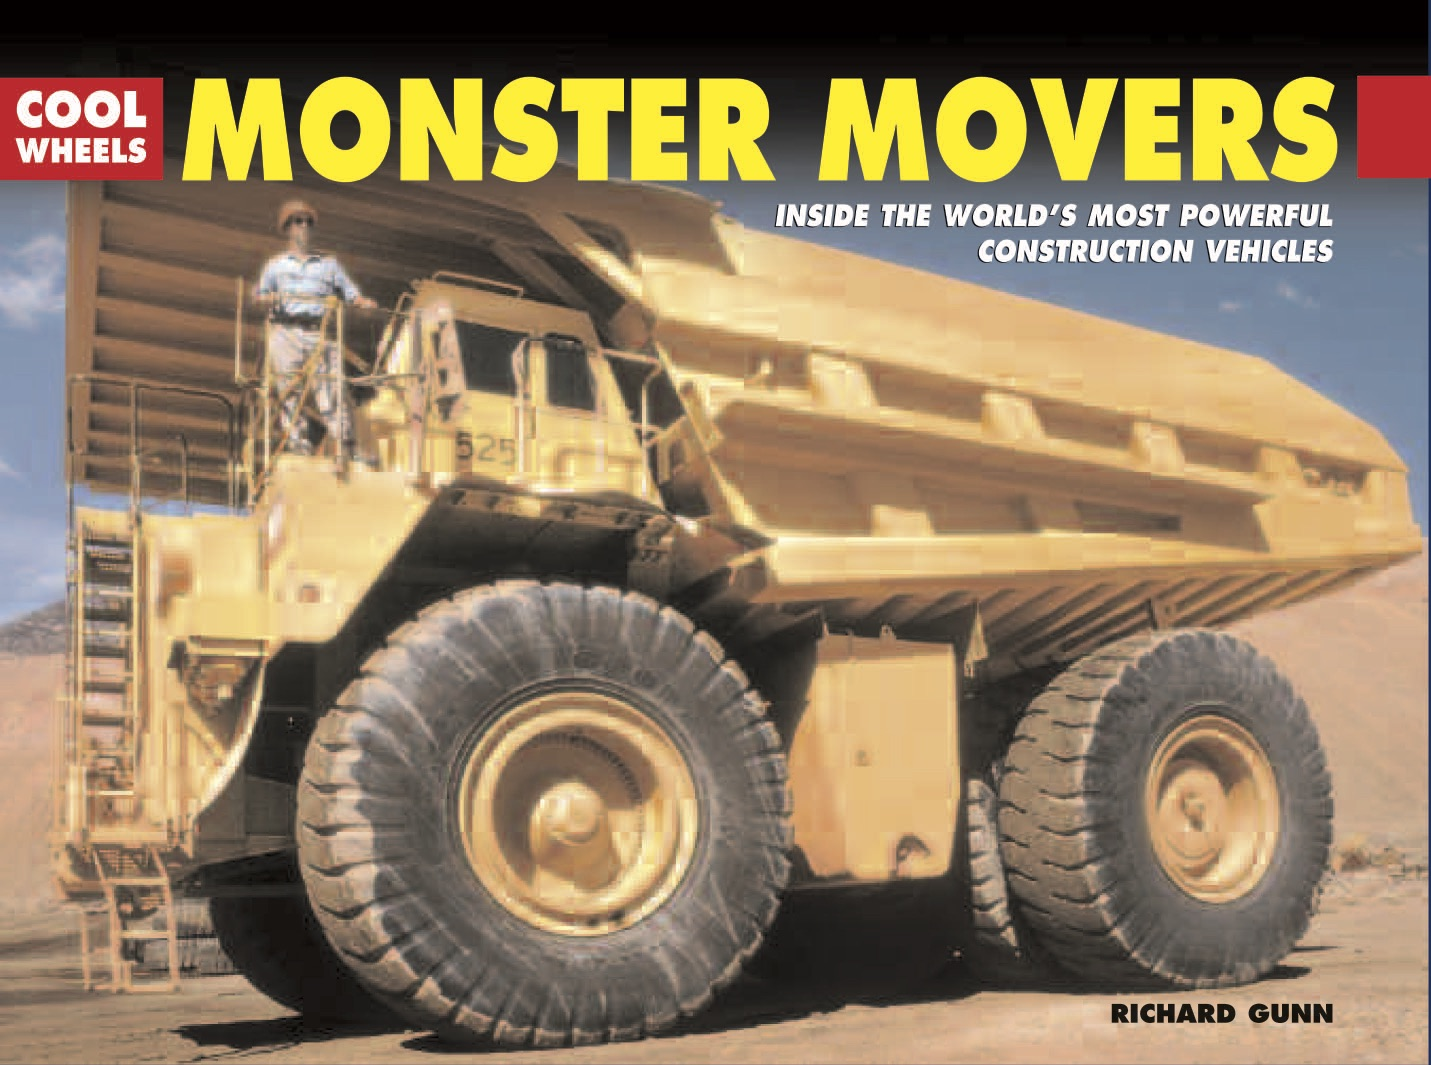 Cool Wheels: Monster Movers